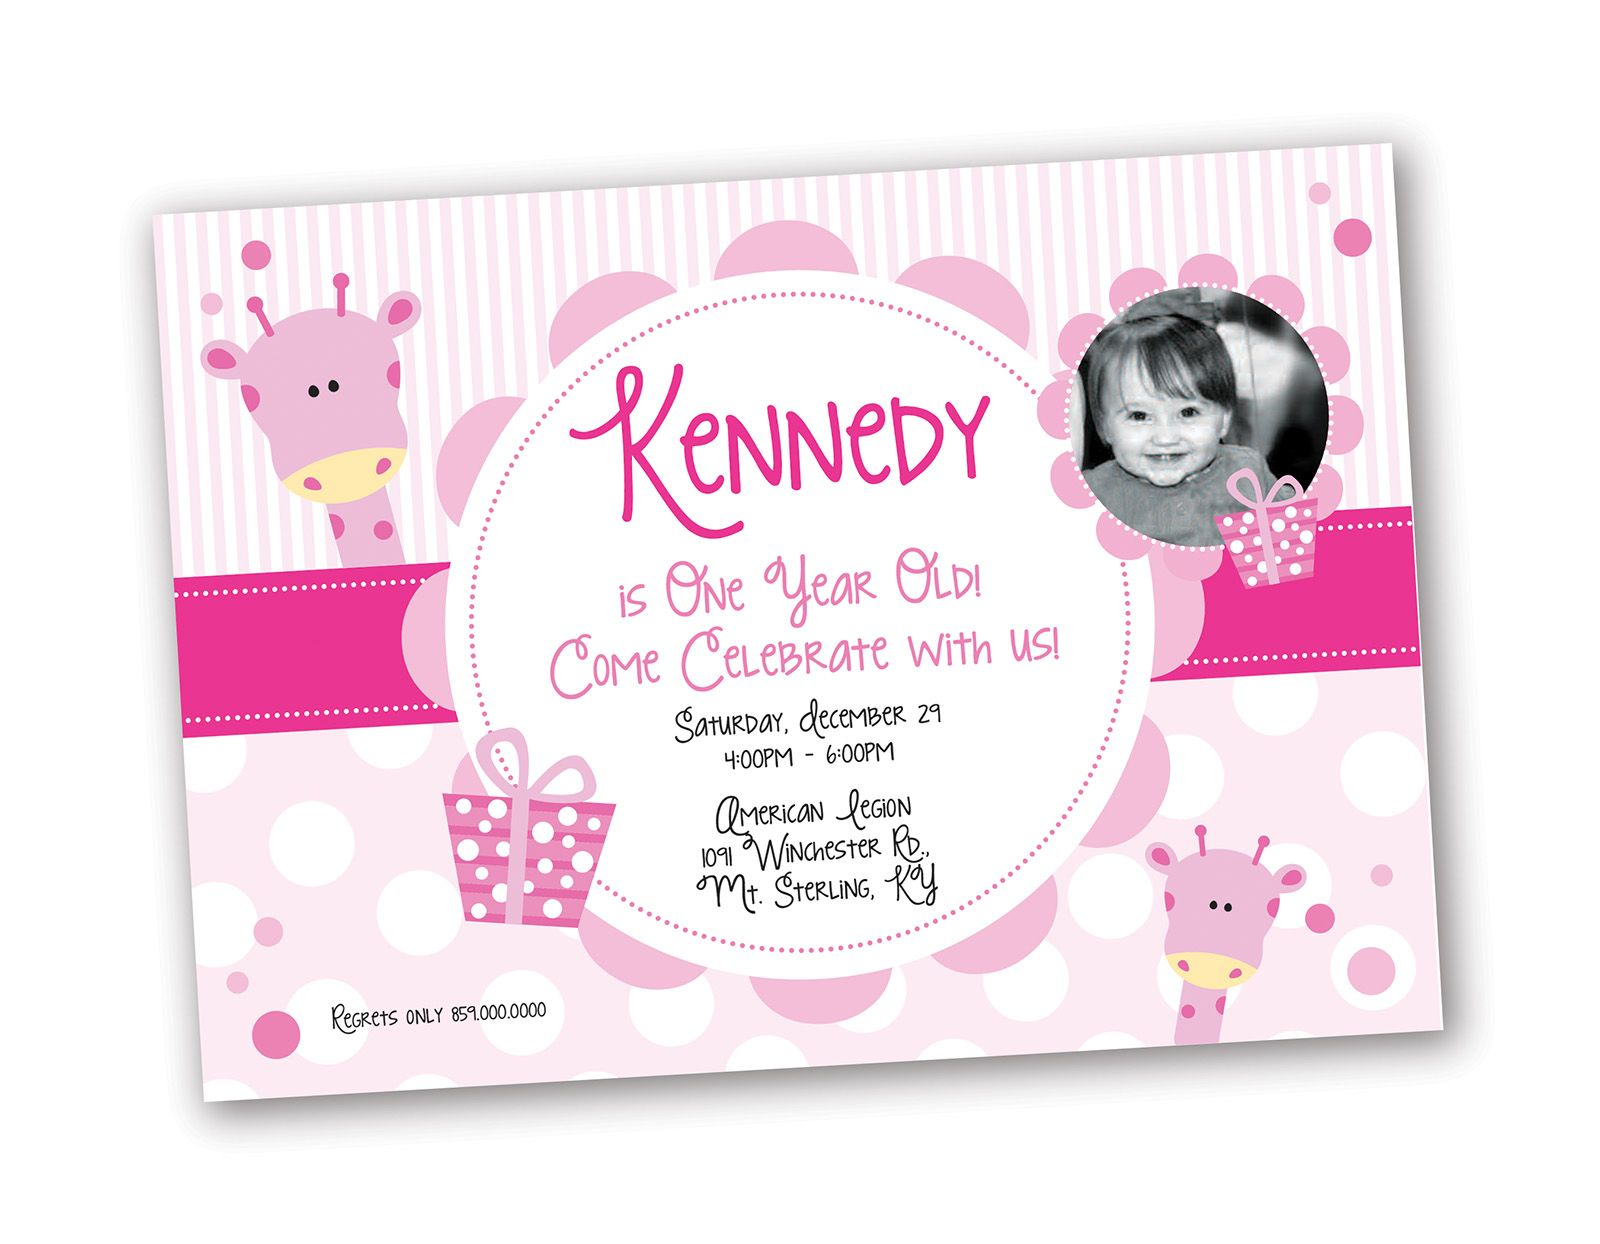 1 year old girl birthday invitation giraffe theme design designs 1 year old girl birthday invitation giraffe theme design stopboris Gallery